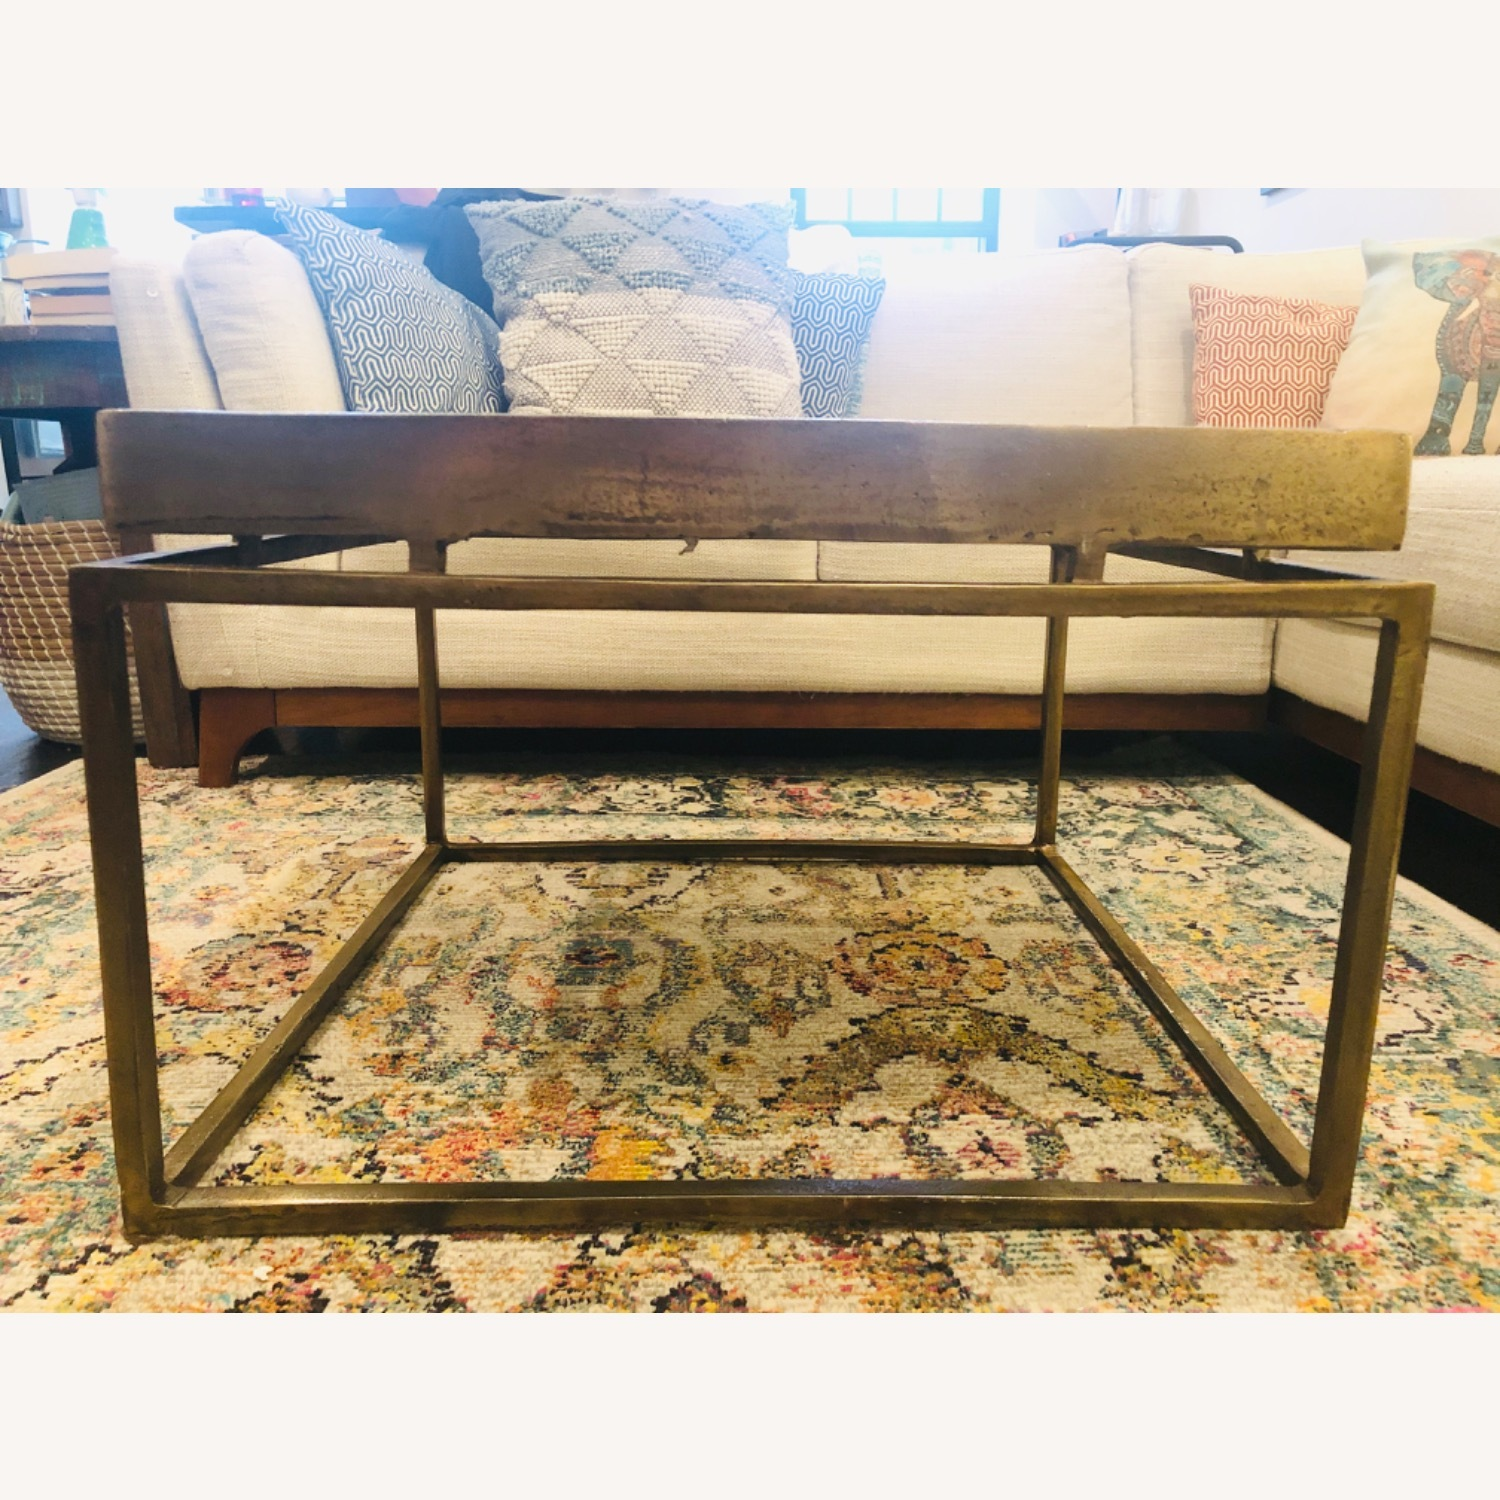 Crate & Barrel Antique Brass Bunching Table - image-3